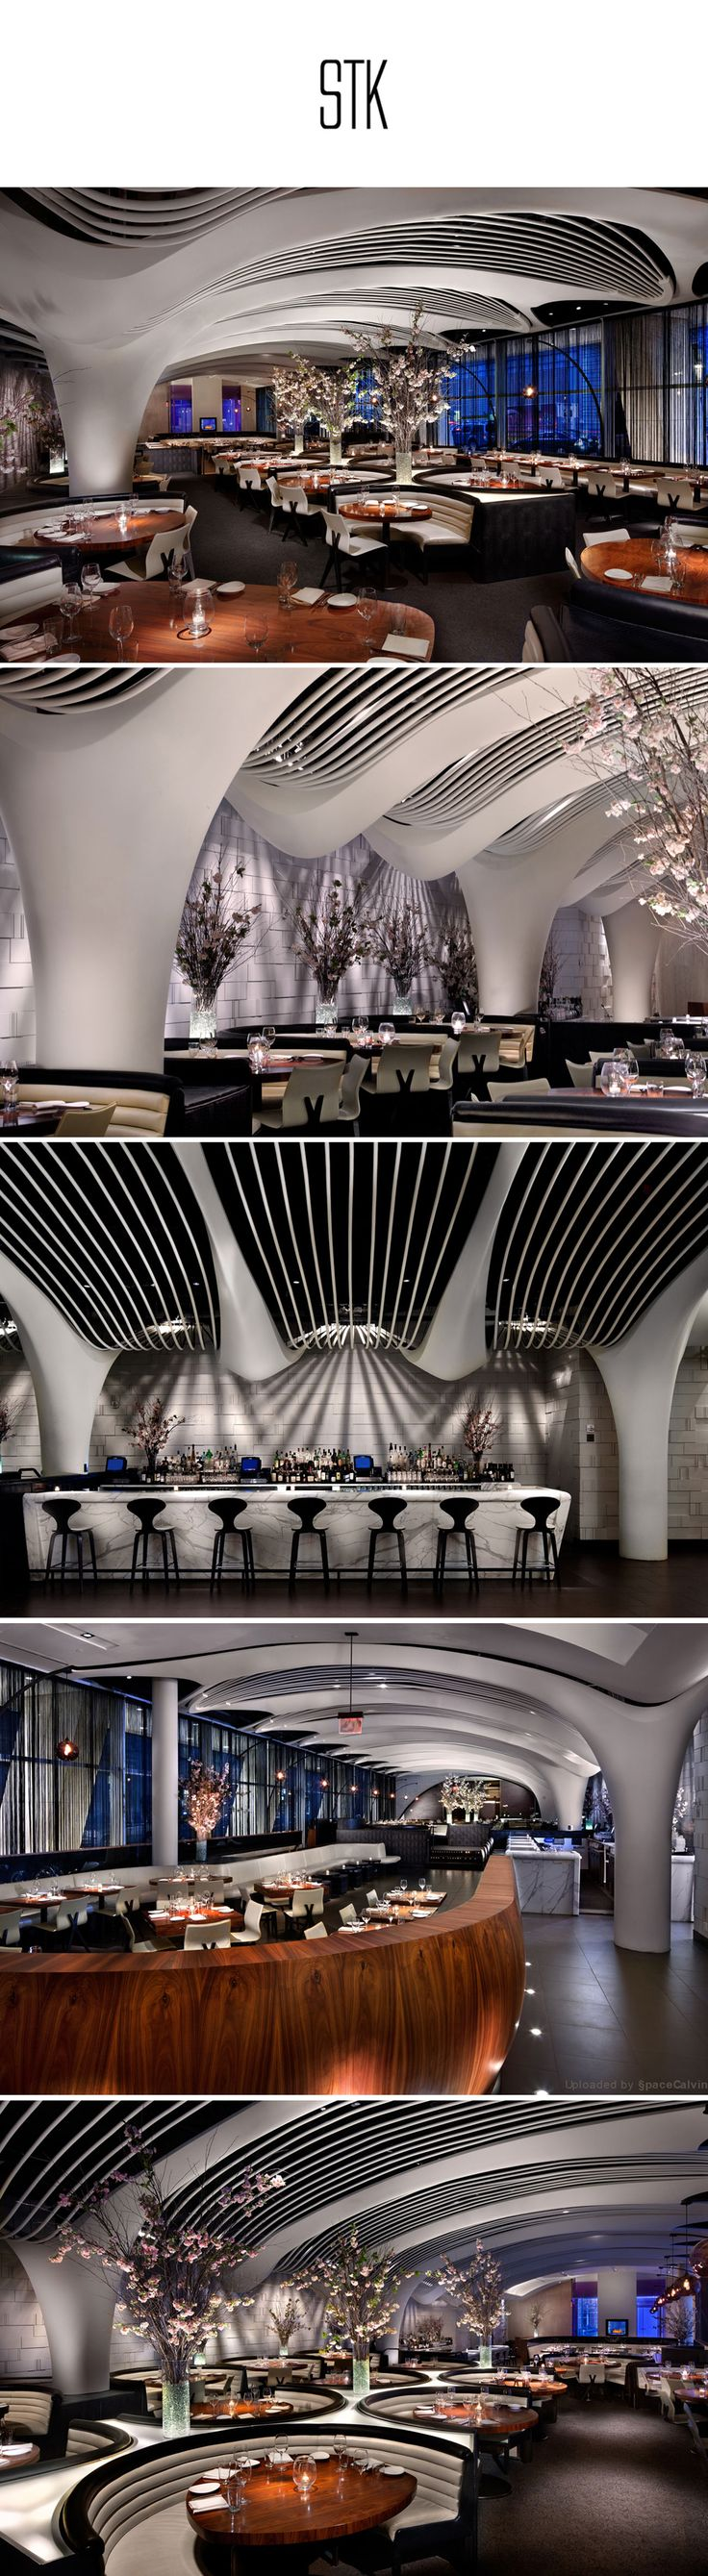 STK Midtown restaurant ::  ICRAVE, New York.....